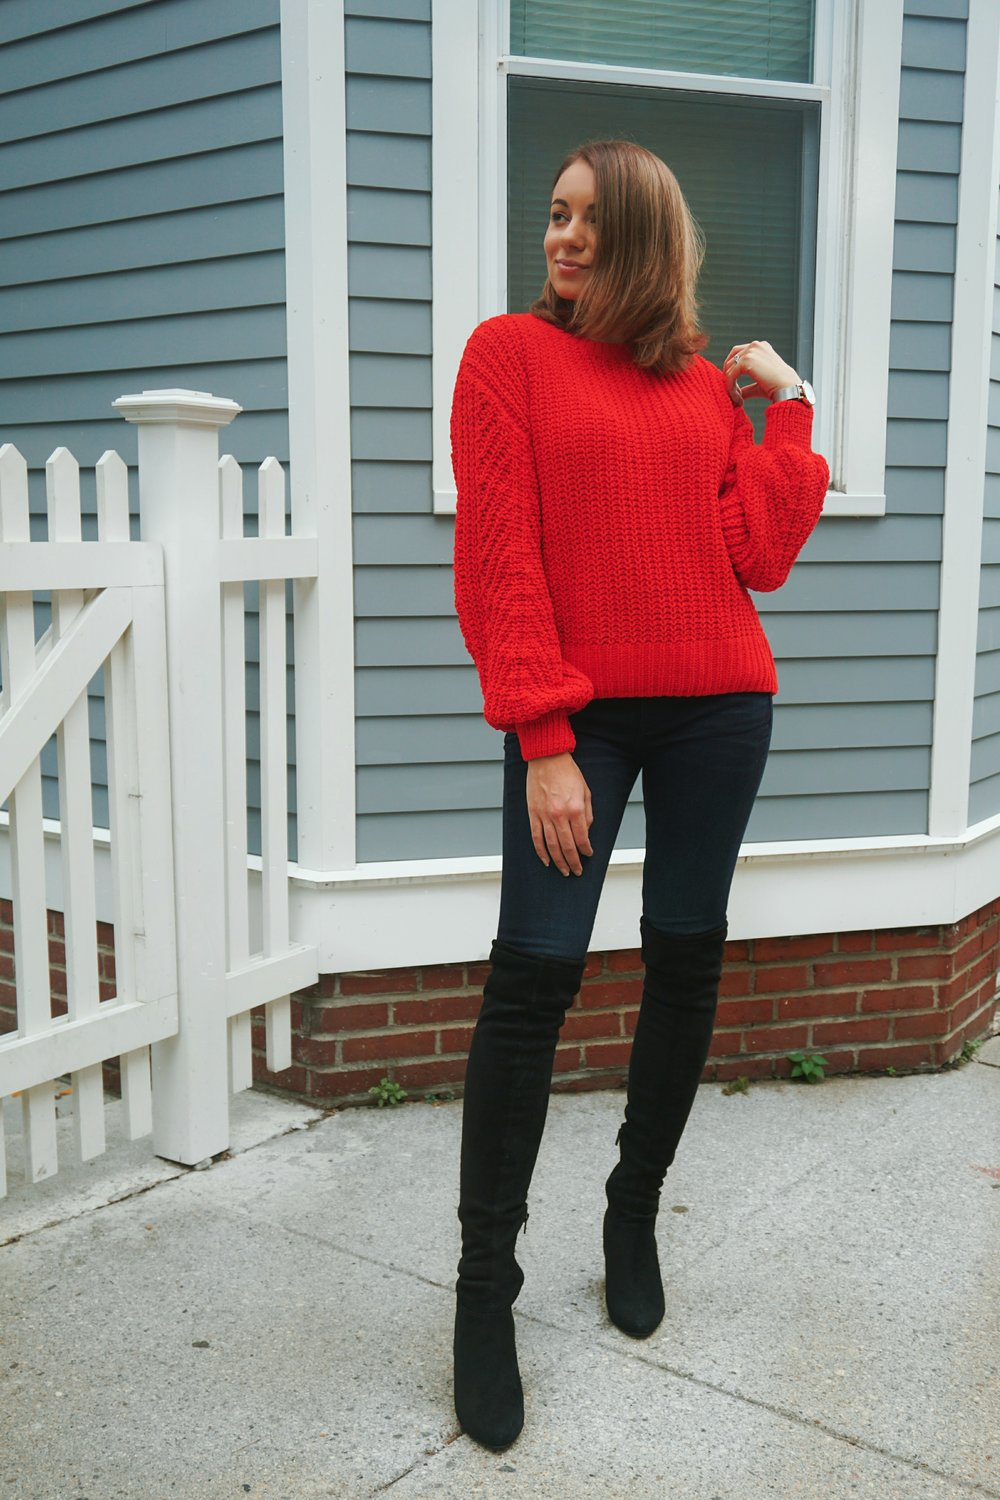 A beauty blogger wearing a sweater with bell-shaped sleeves, jeans, and thigh high boots.